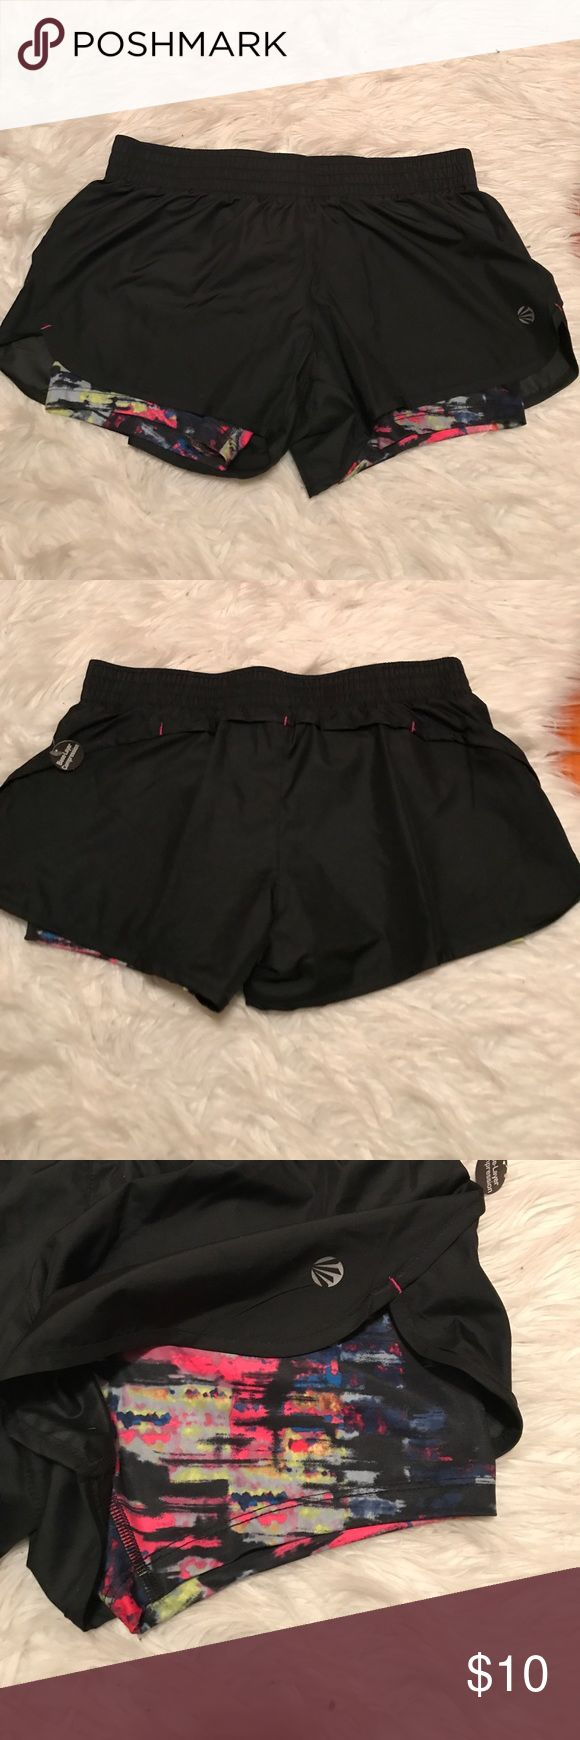 Athletic shorts Jillian Michaels athletic shorts. Built in spandex shorts underneath. Black with multi color spandex! Jillian Michaels Shorts